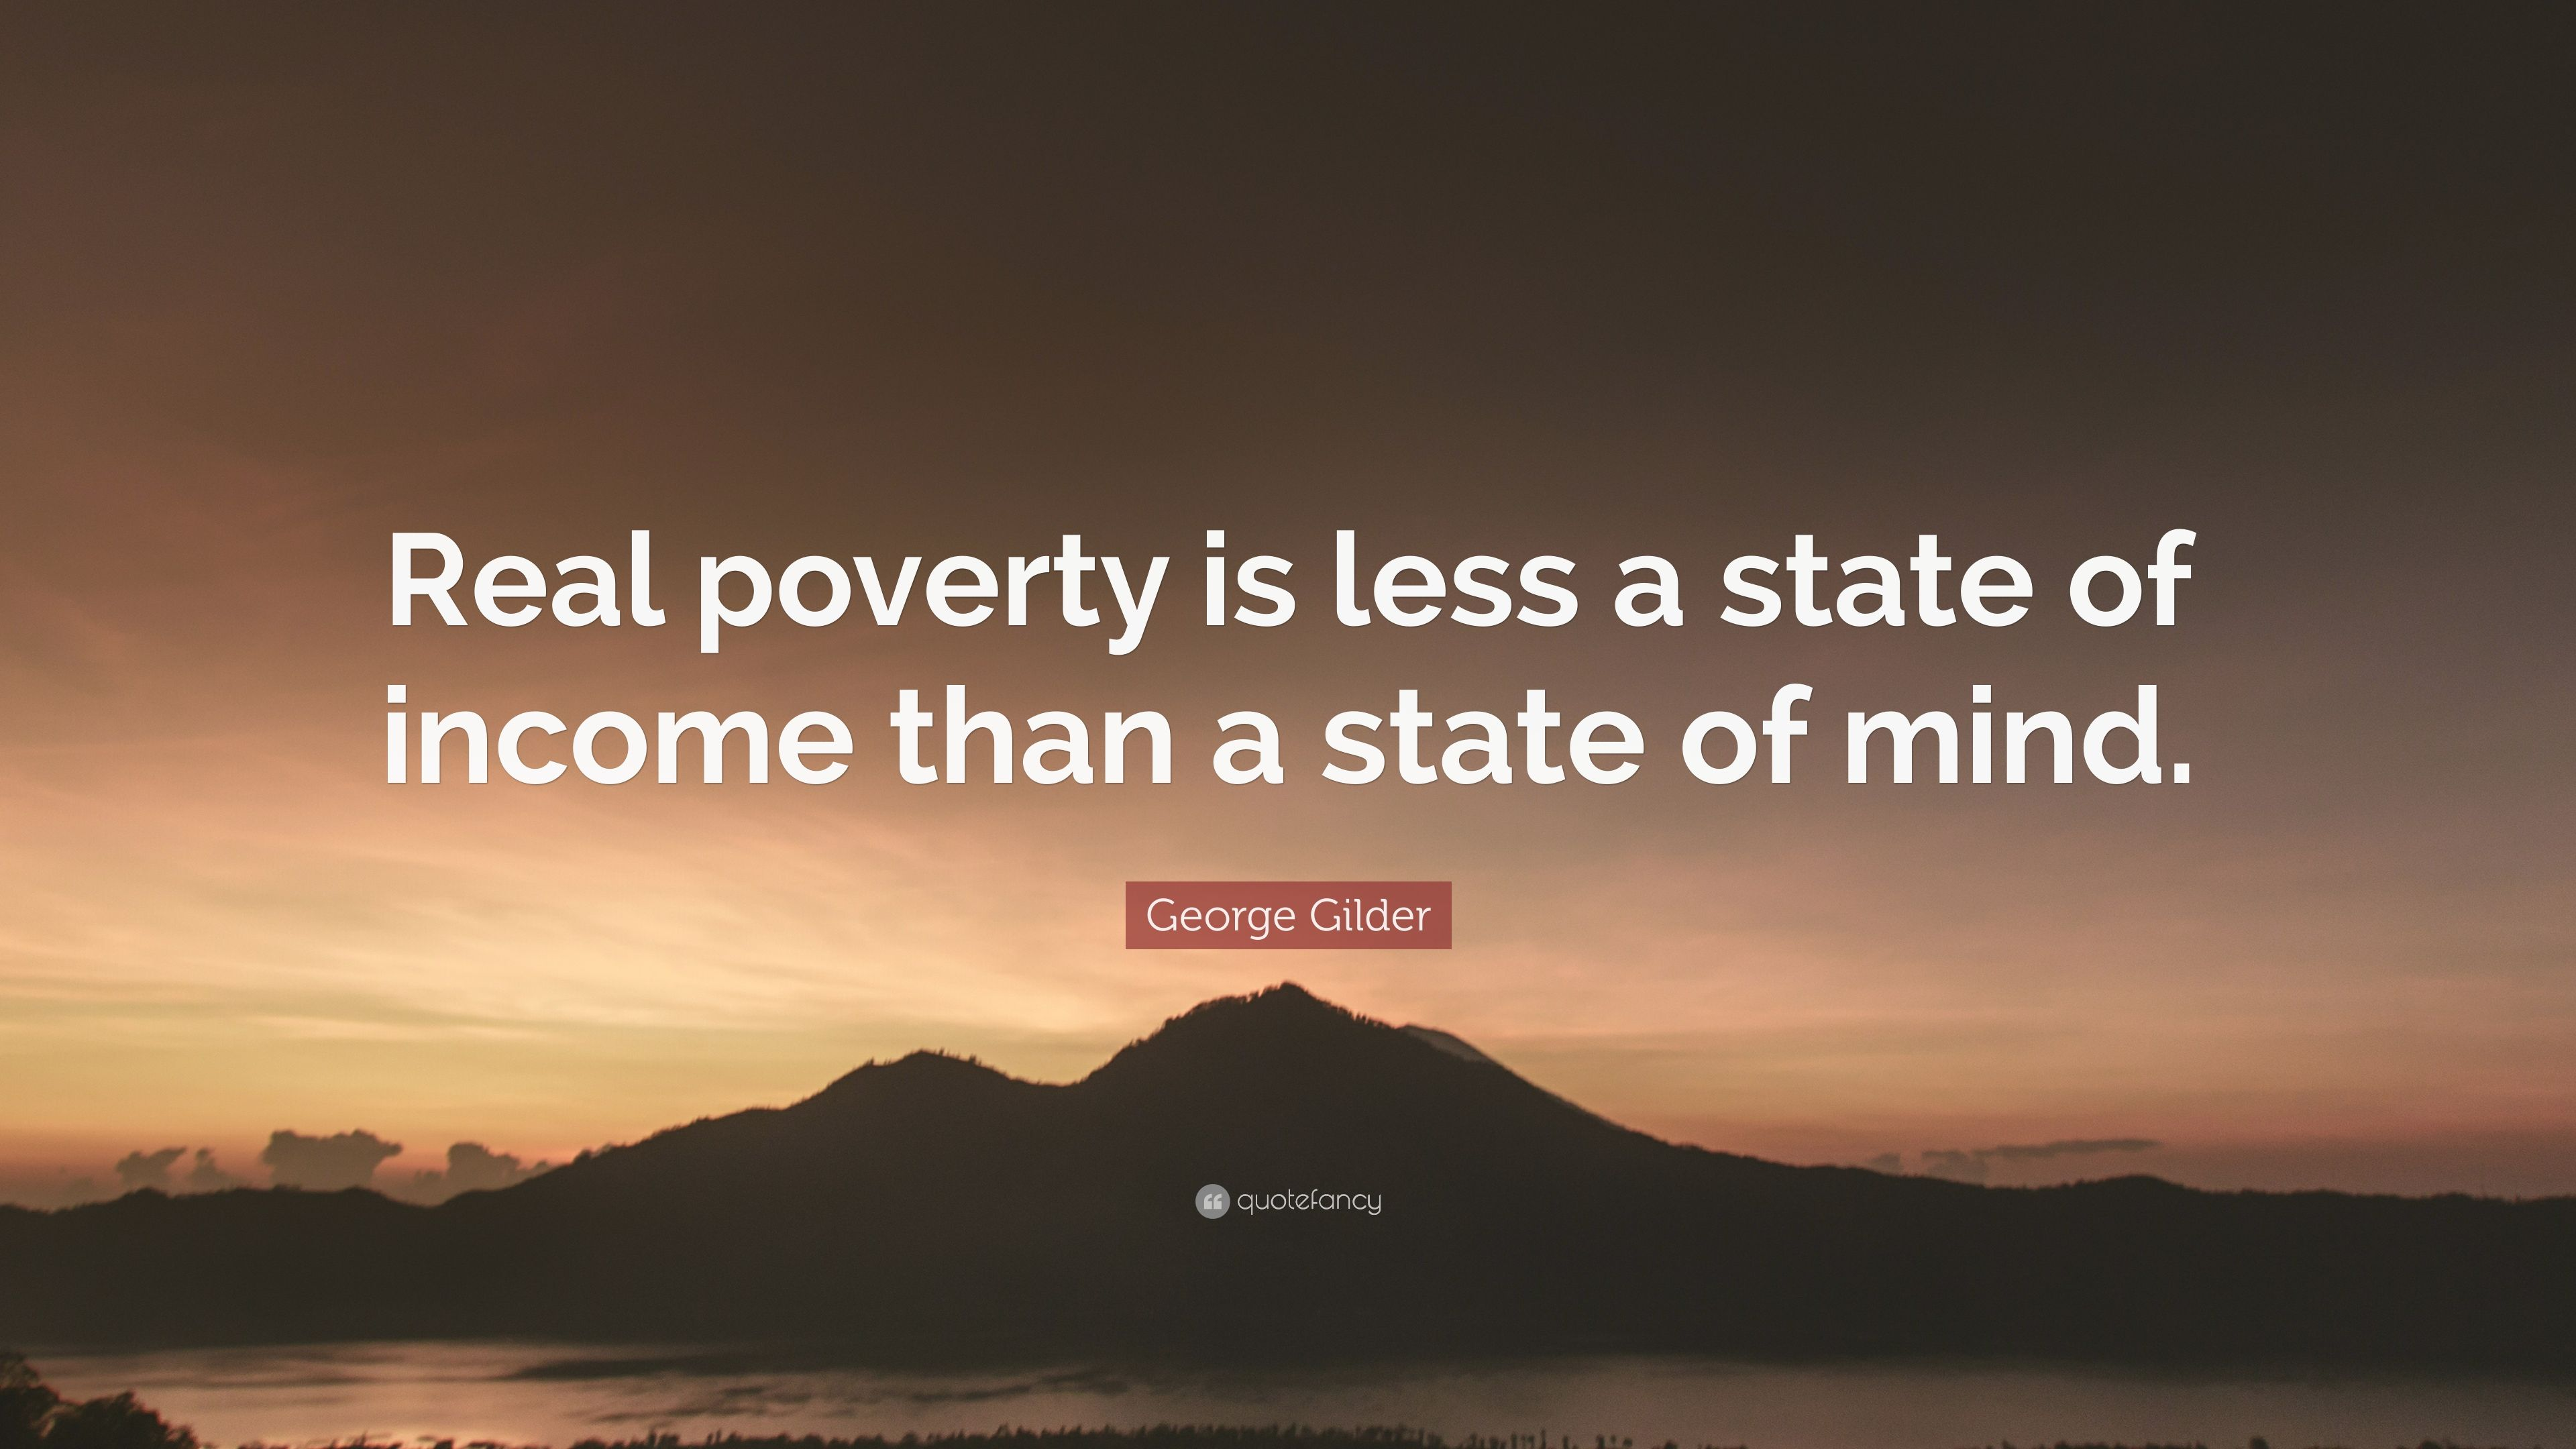 Essay on poverty is a state of mind